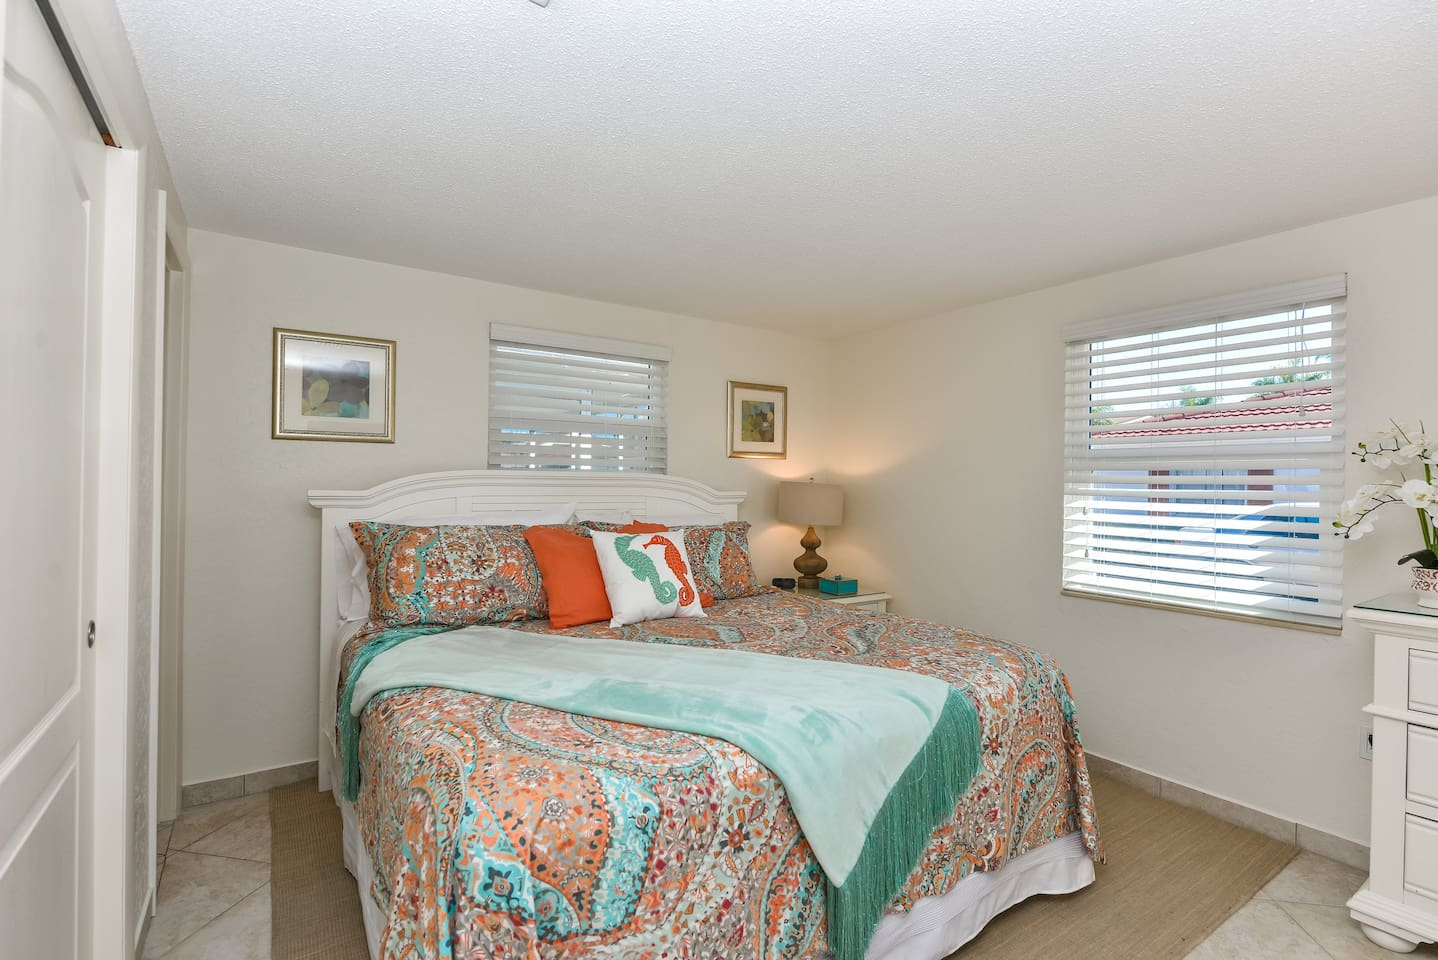 Newly designed master bedroom and renovated master bathroom.